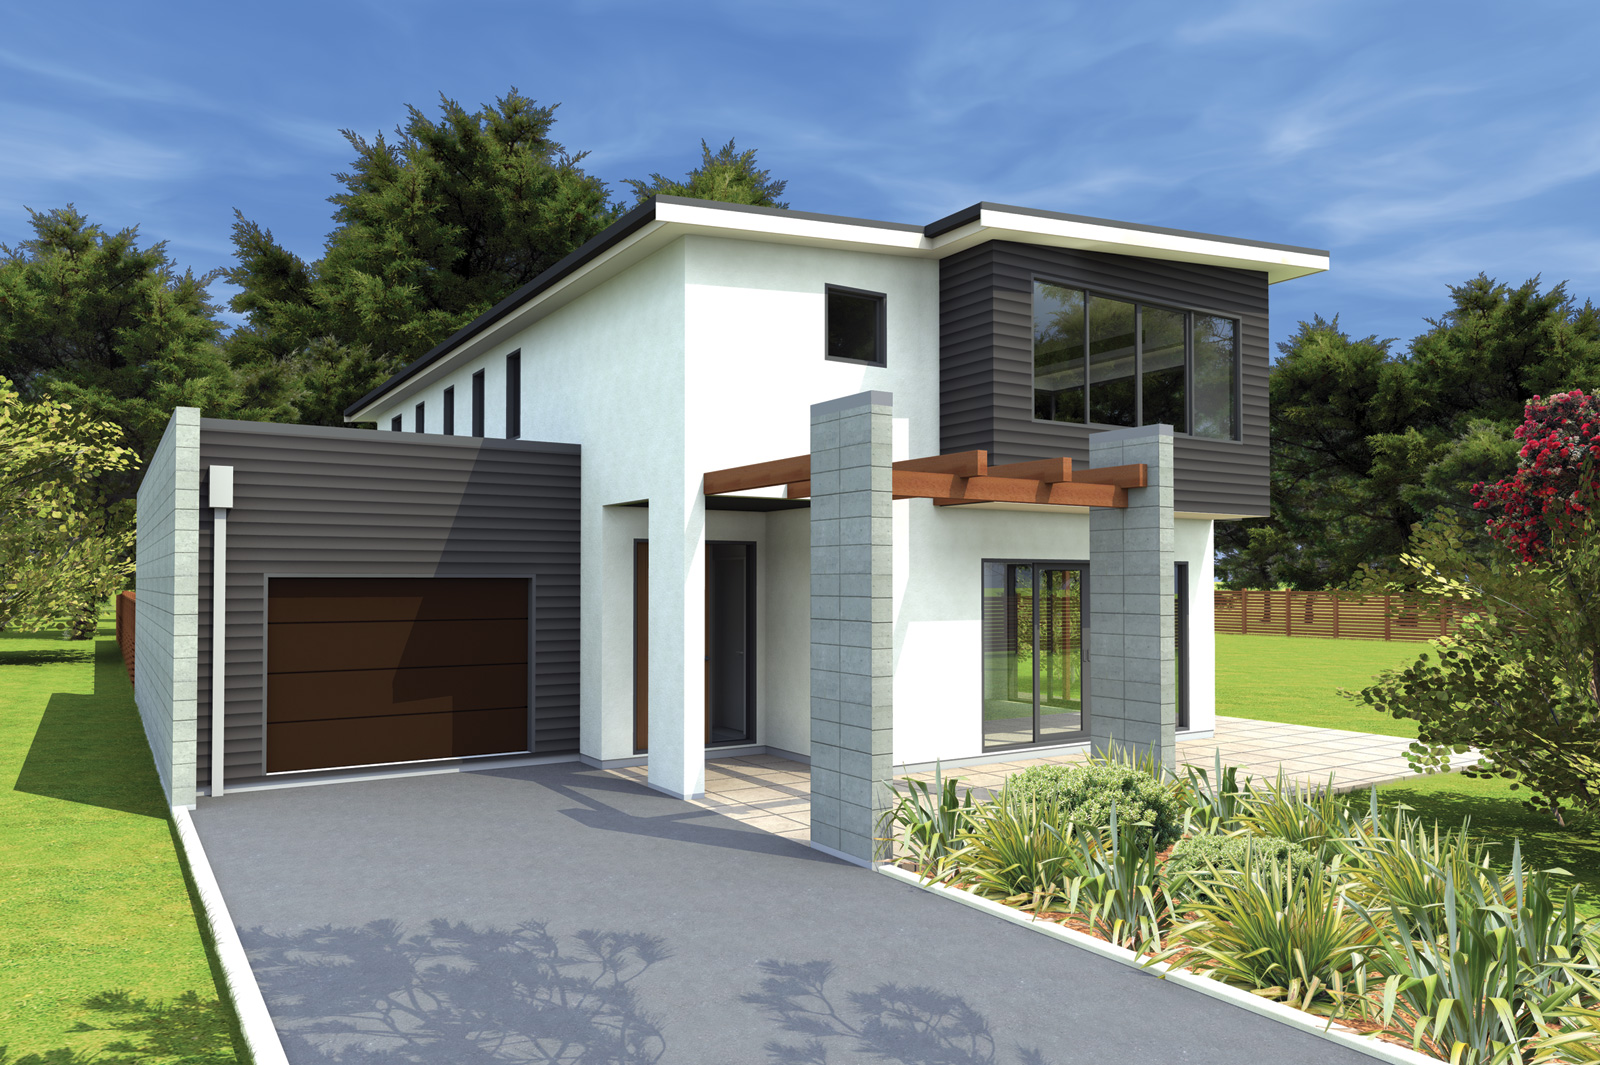 New home designs latest new modern homes designs new Home layout